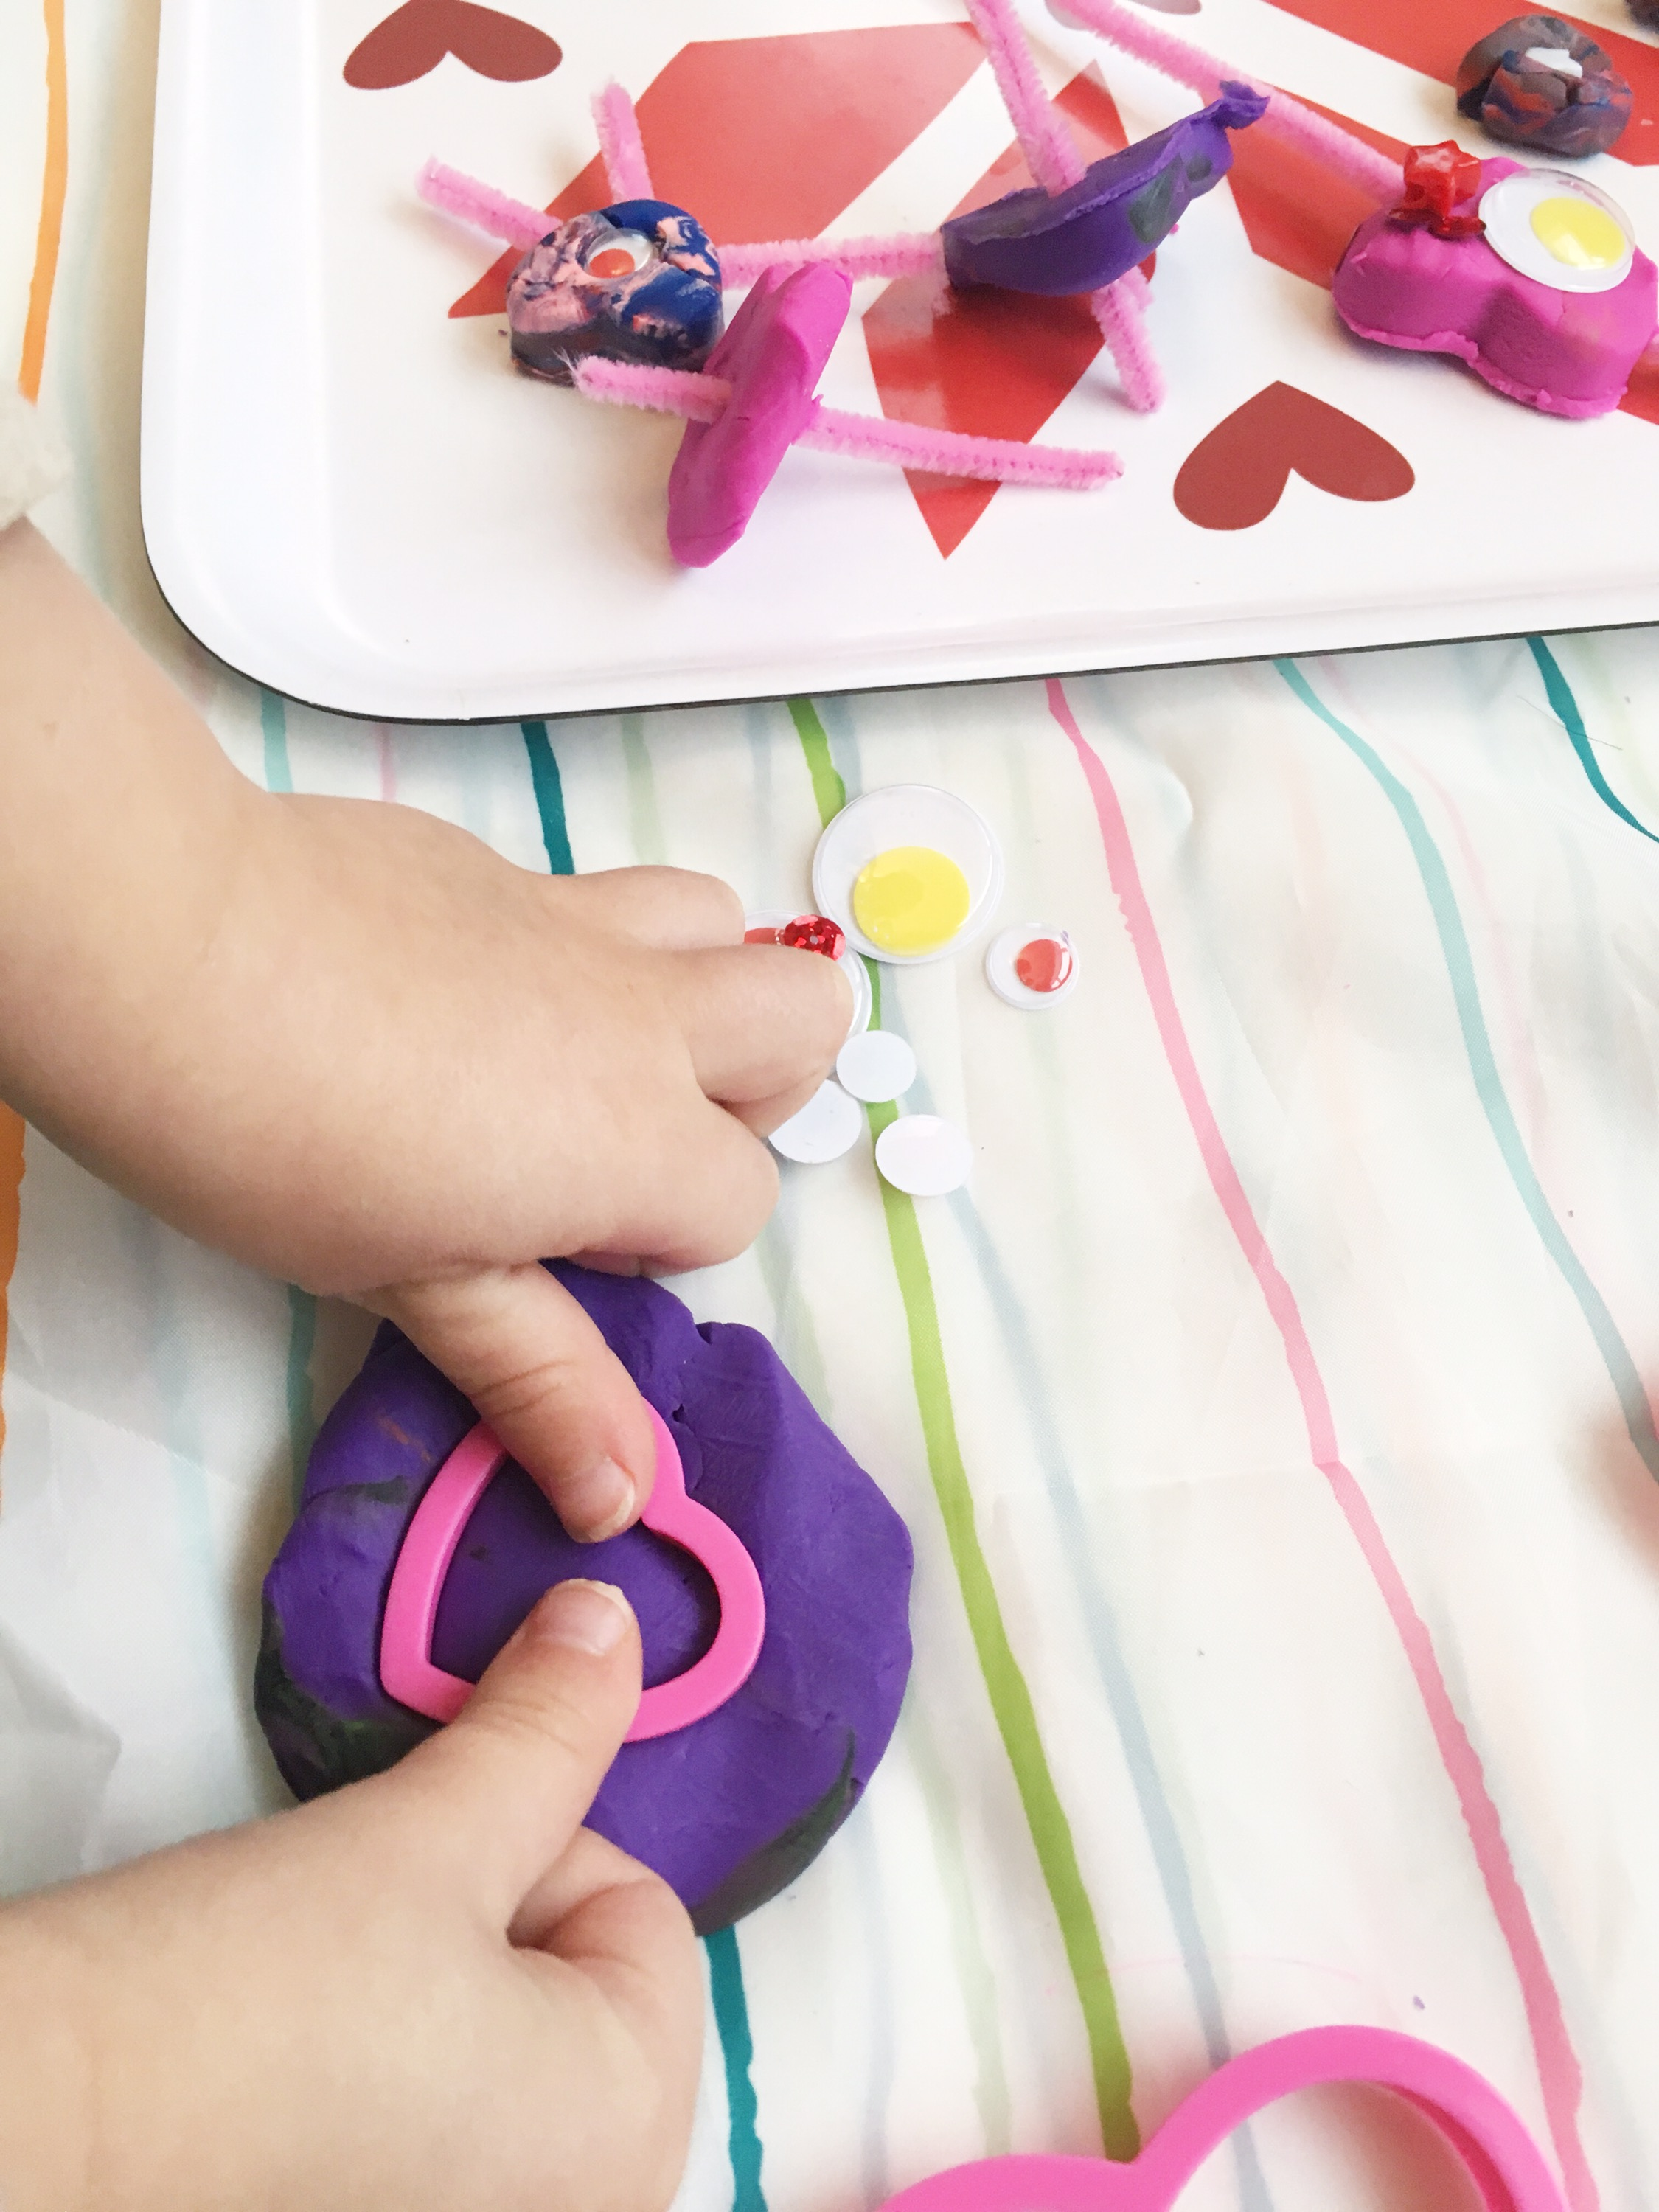 Make your own play dough heart decorating kit - fun activity for Valentine's Day